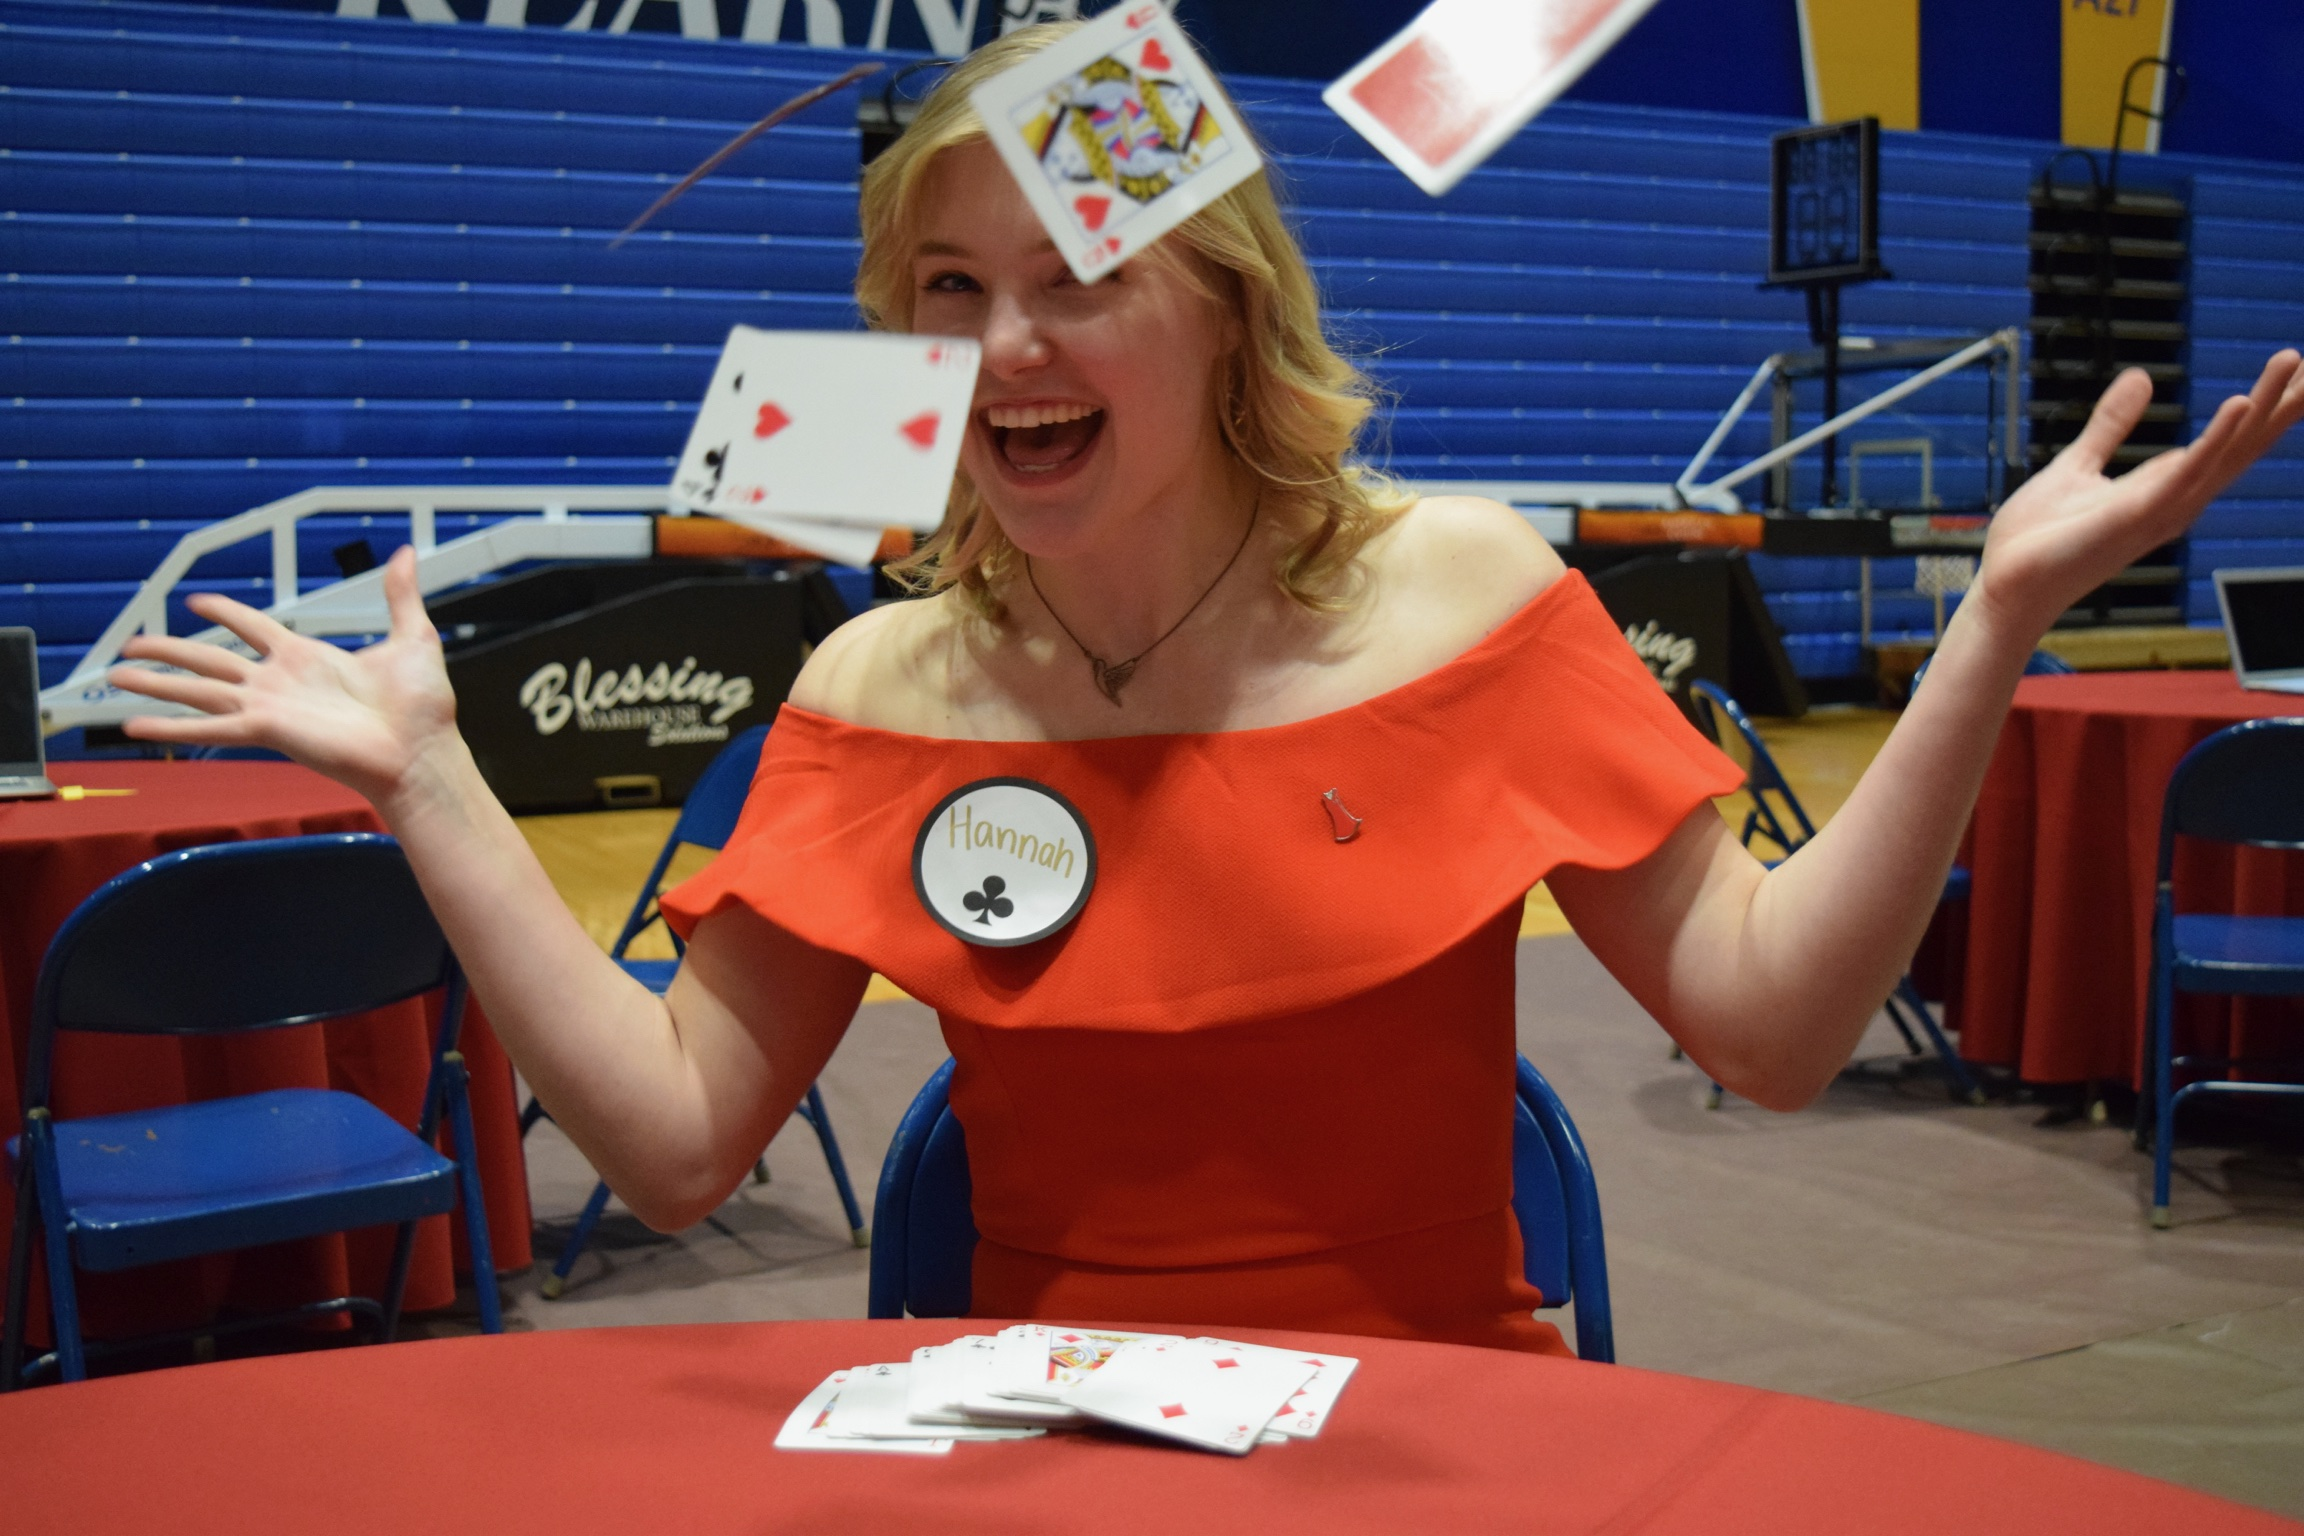 Philanthropy - Alpha Phi holds two philanthropys each year, our King of Hearts male pageant and our Red Dress Poker Tournament. Each event being popular to students on campus and to the Kearney Community. Alpha Phi's national philanthropy is Women's heart health and we pride ourselves each year in the donations we are able to give back to this cause.